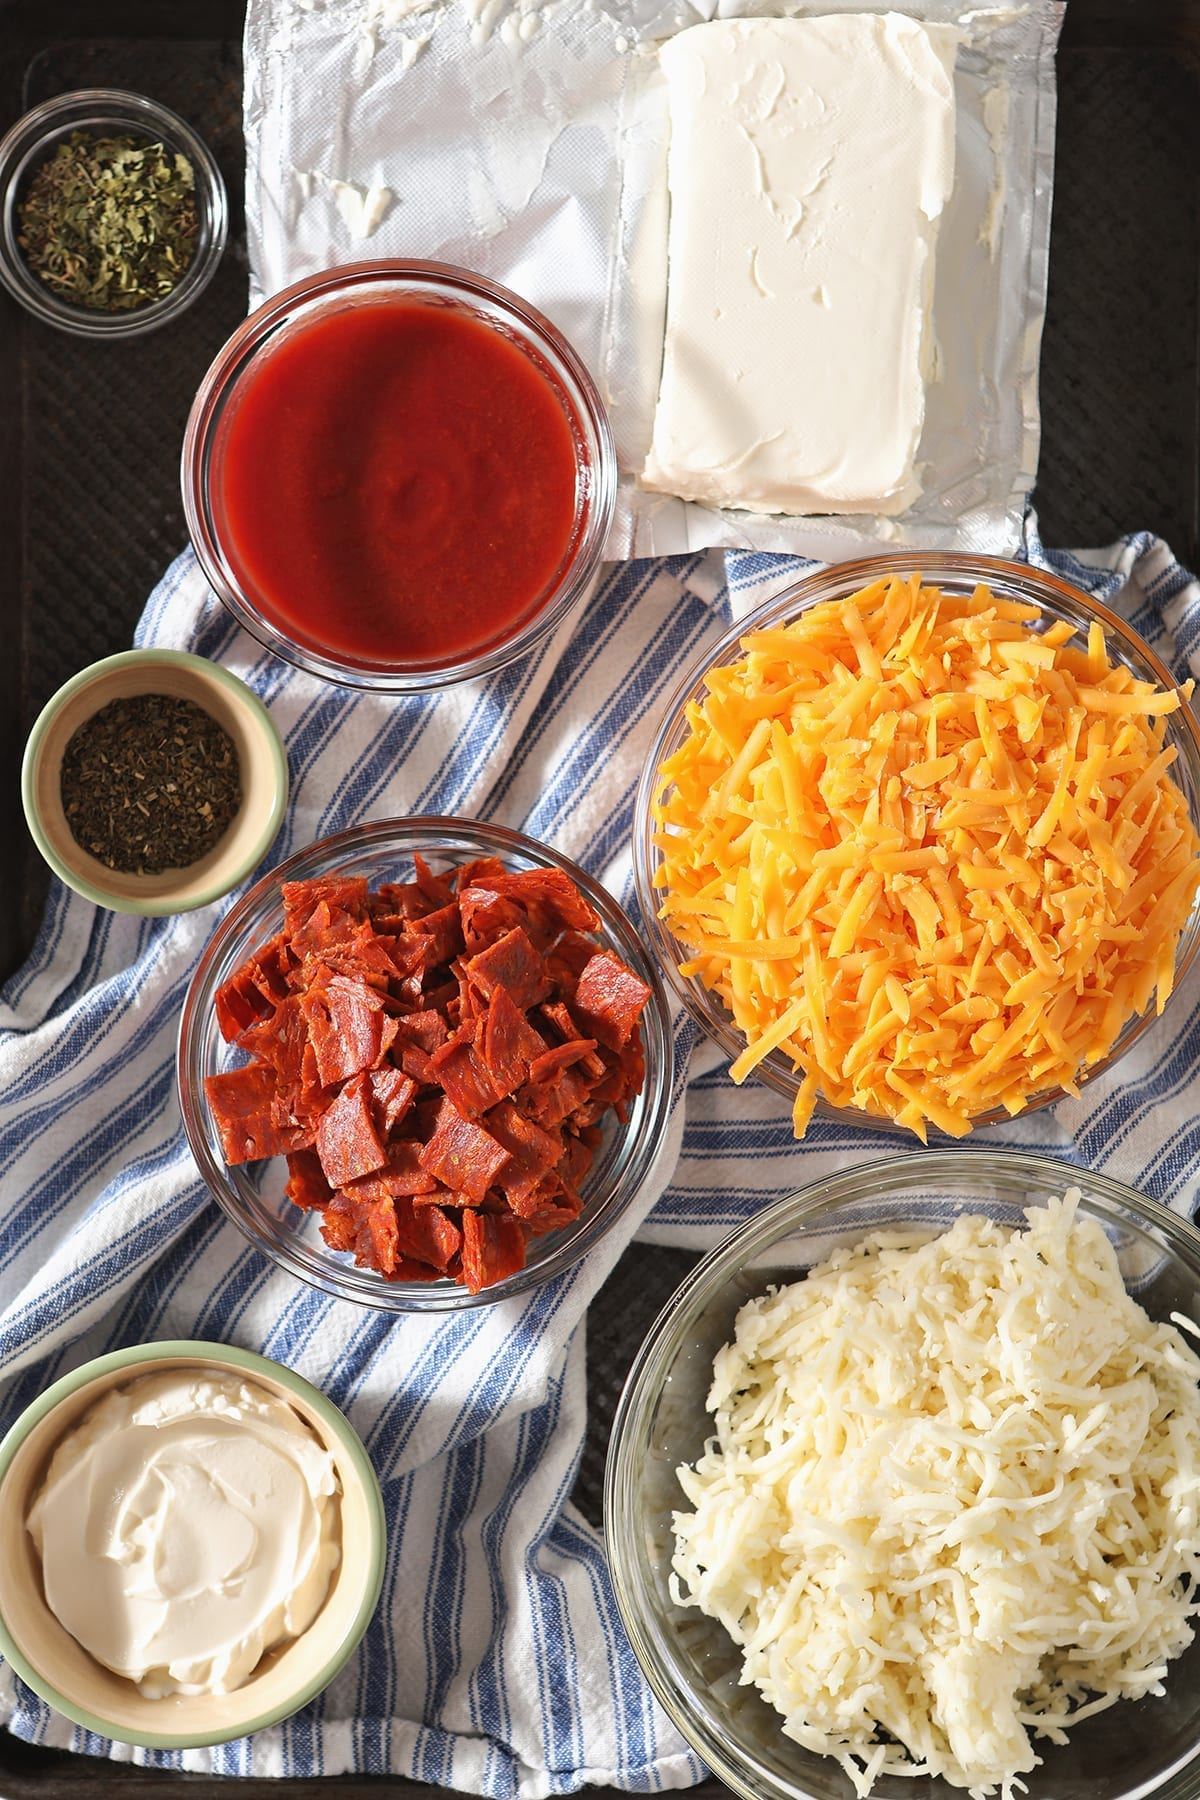 Ingredients for dip sit on a blue and white striped towel in a baking sheet